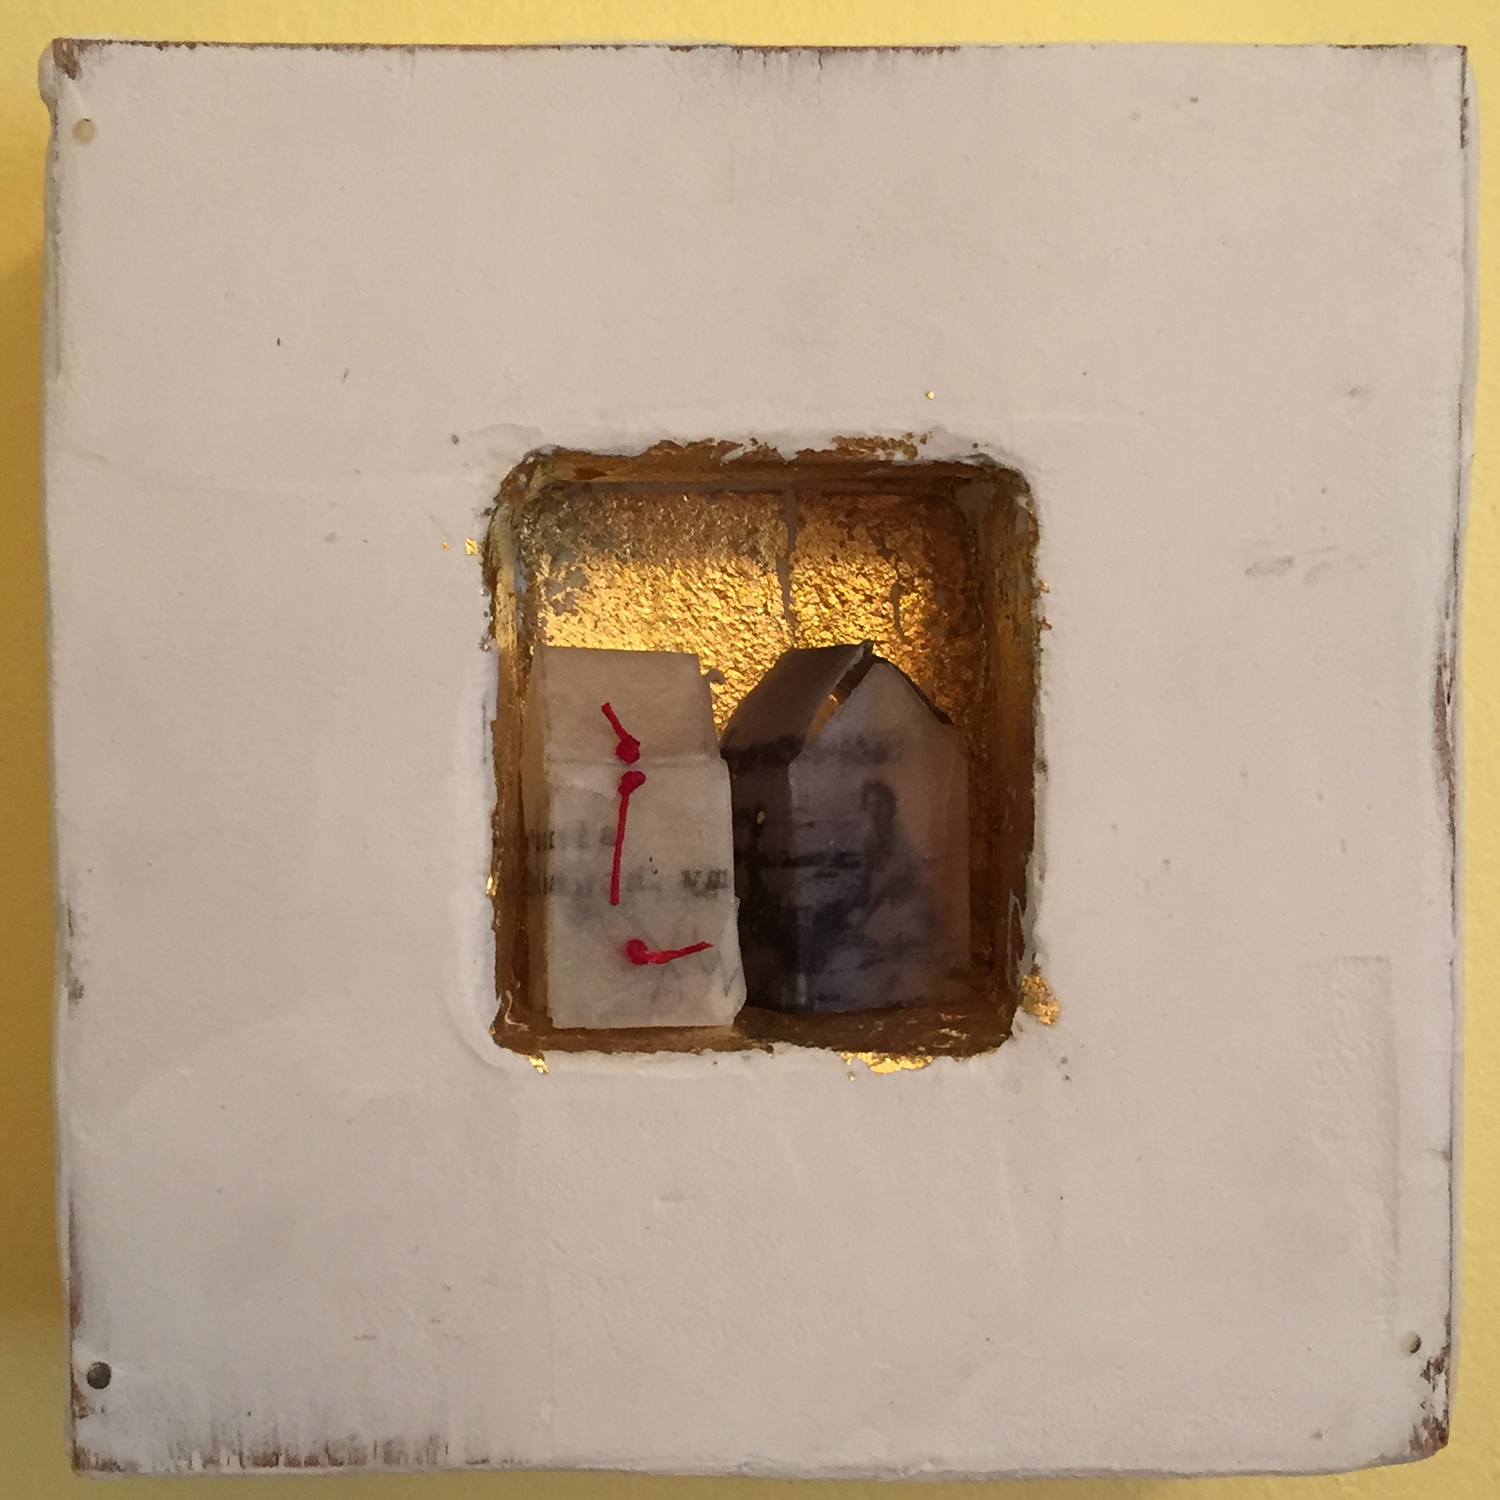 """At the Beach with Mama . Limestone clay, acrylic, 24k gold leaf on board. Tiny houses made from typewritten phrase and familyphoto printed on handmade paper dipped in beeswax. 5""""x5""""x2"""".  SOLD"""